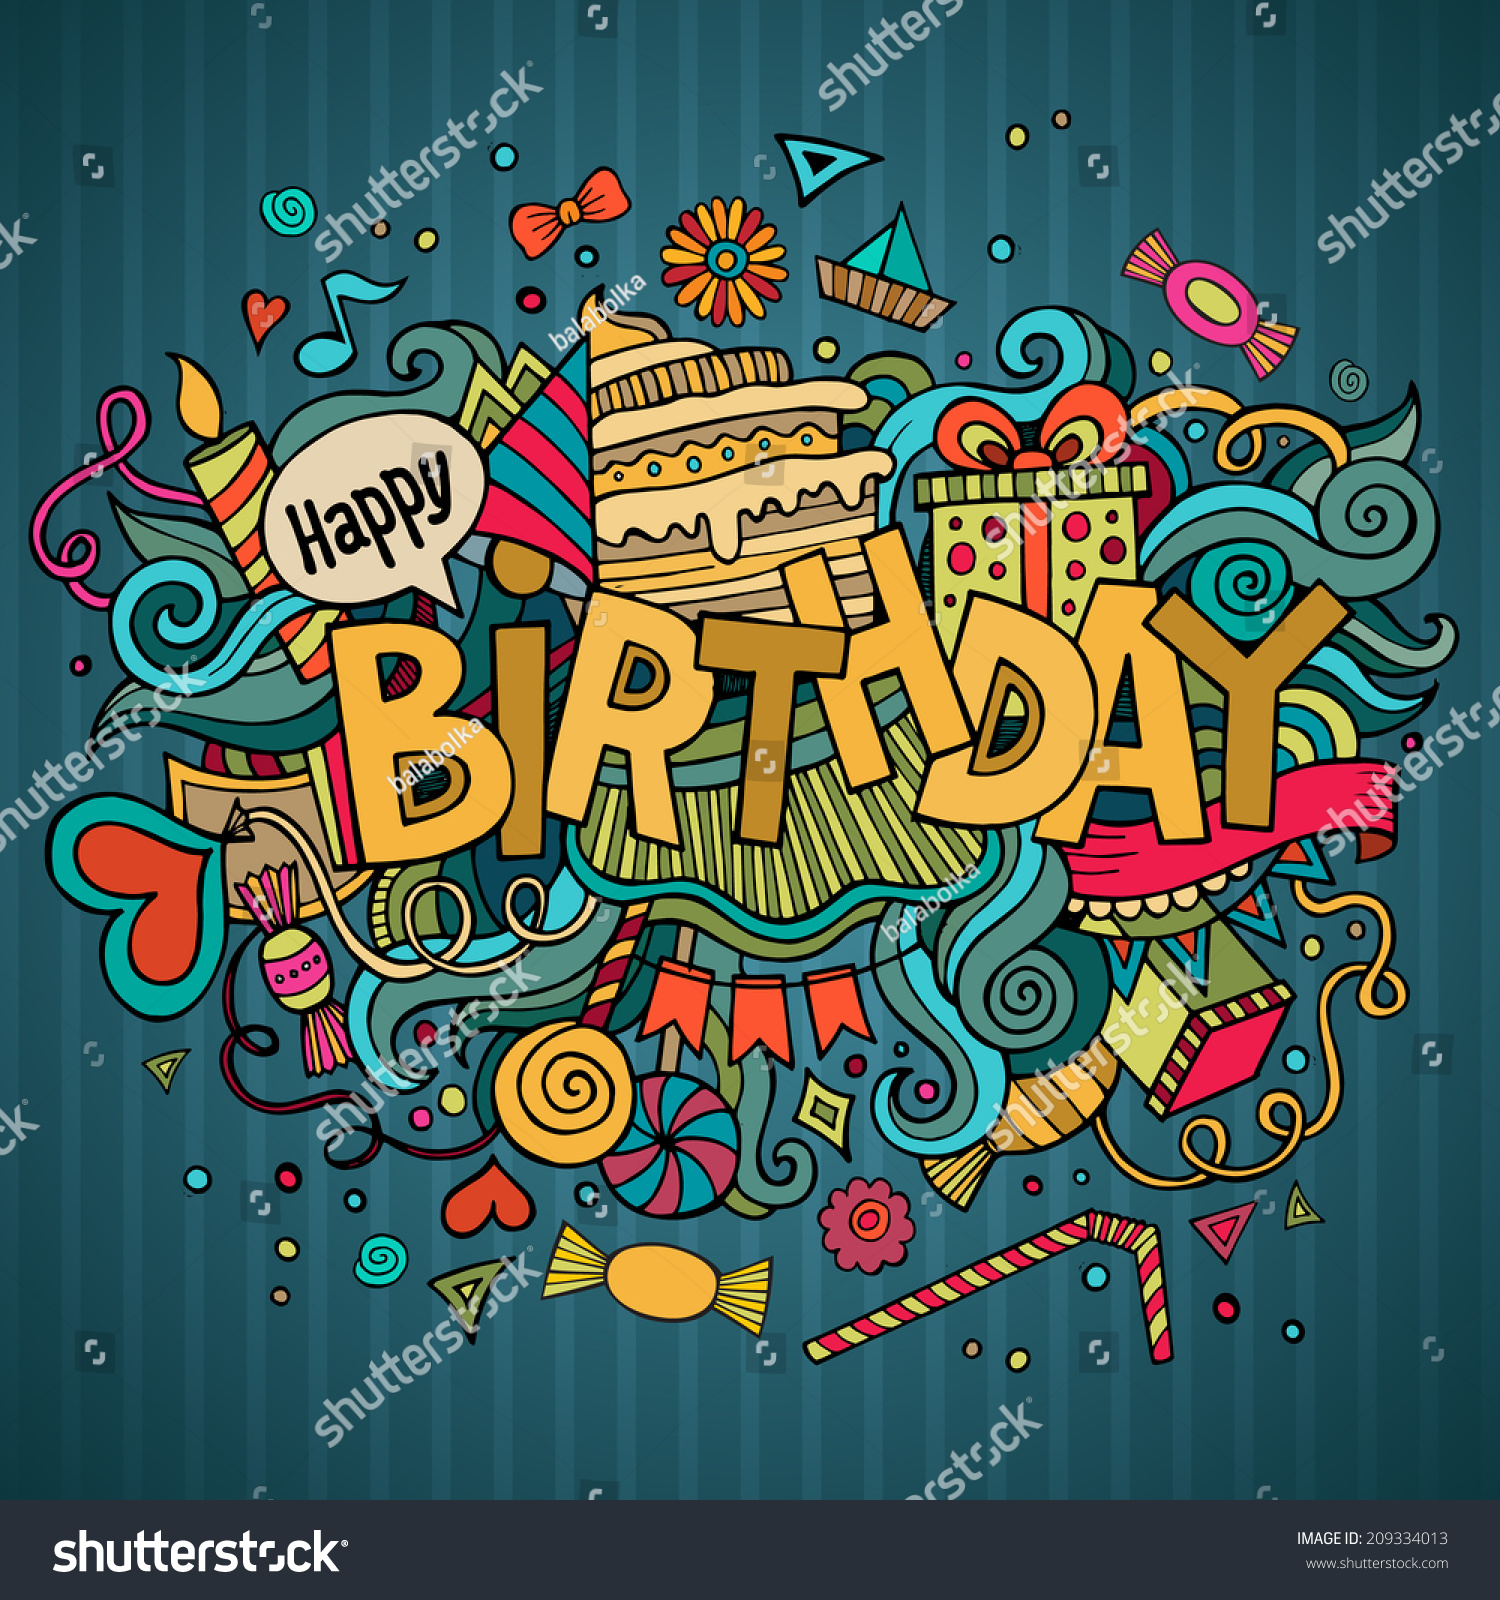 Stock vector music hand lettering and doodles elements - Birthday Hand Lettering And Doodles Elements Background Vector Illustration